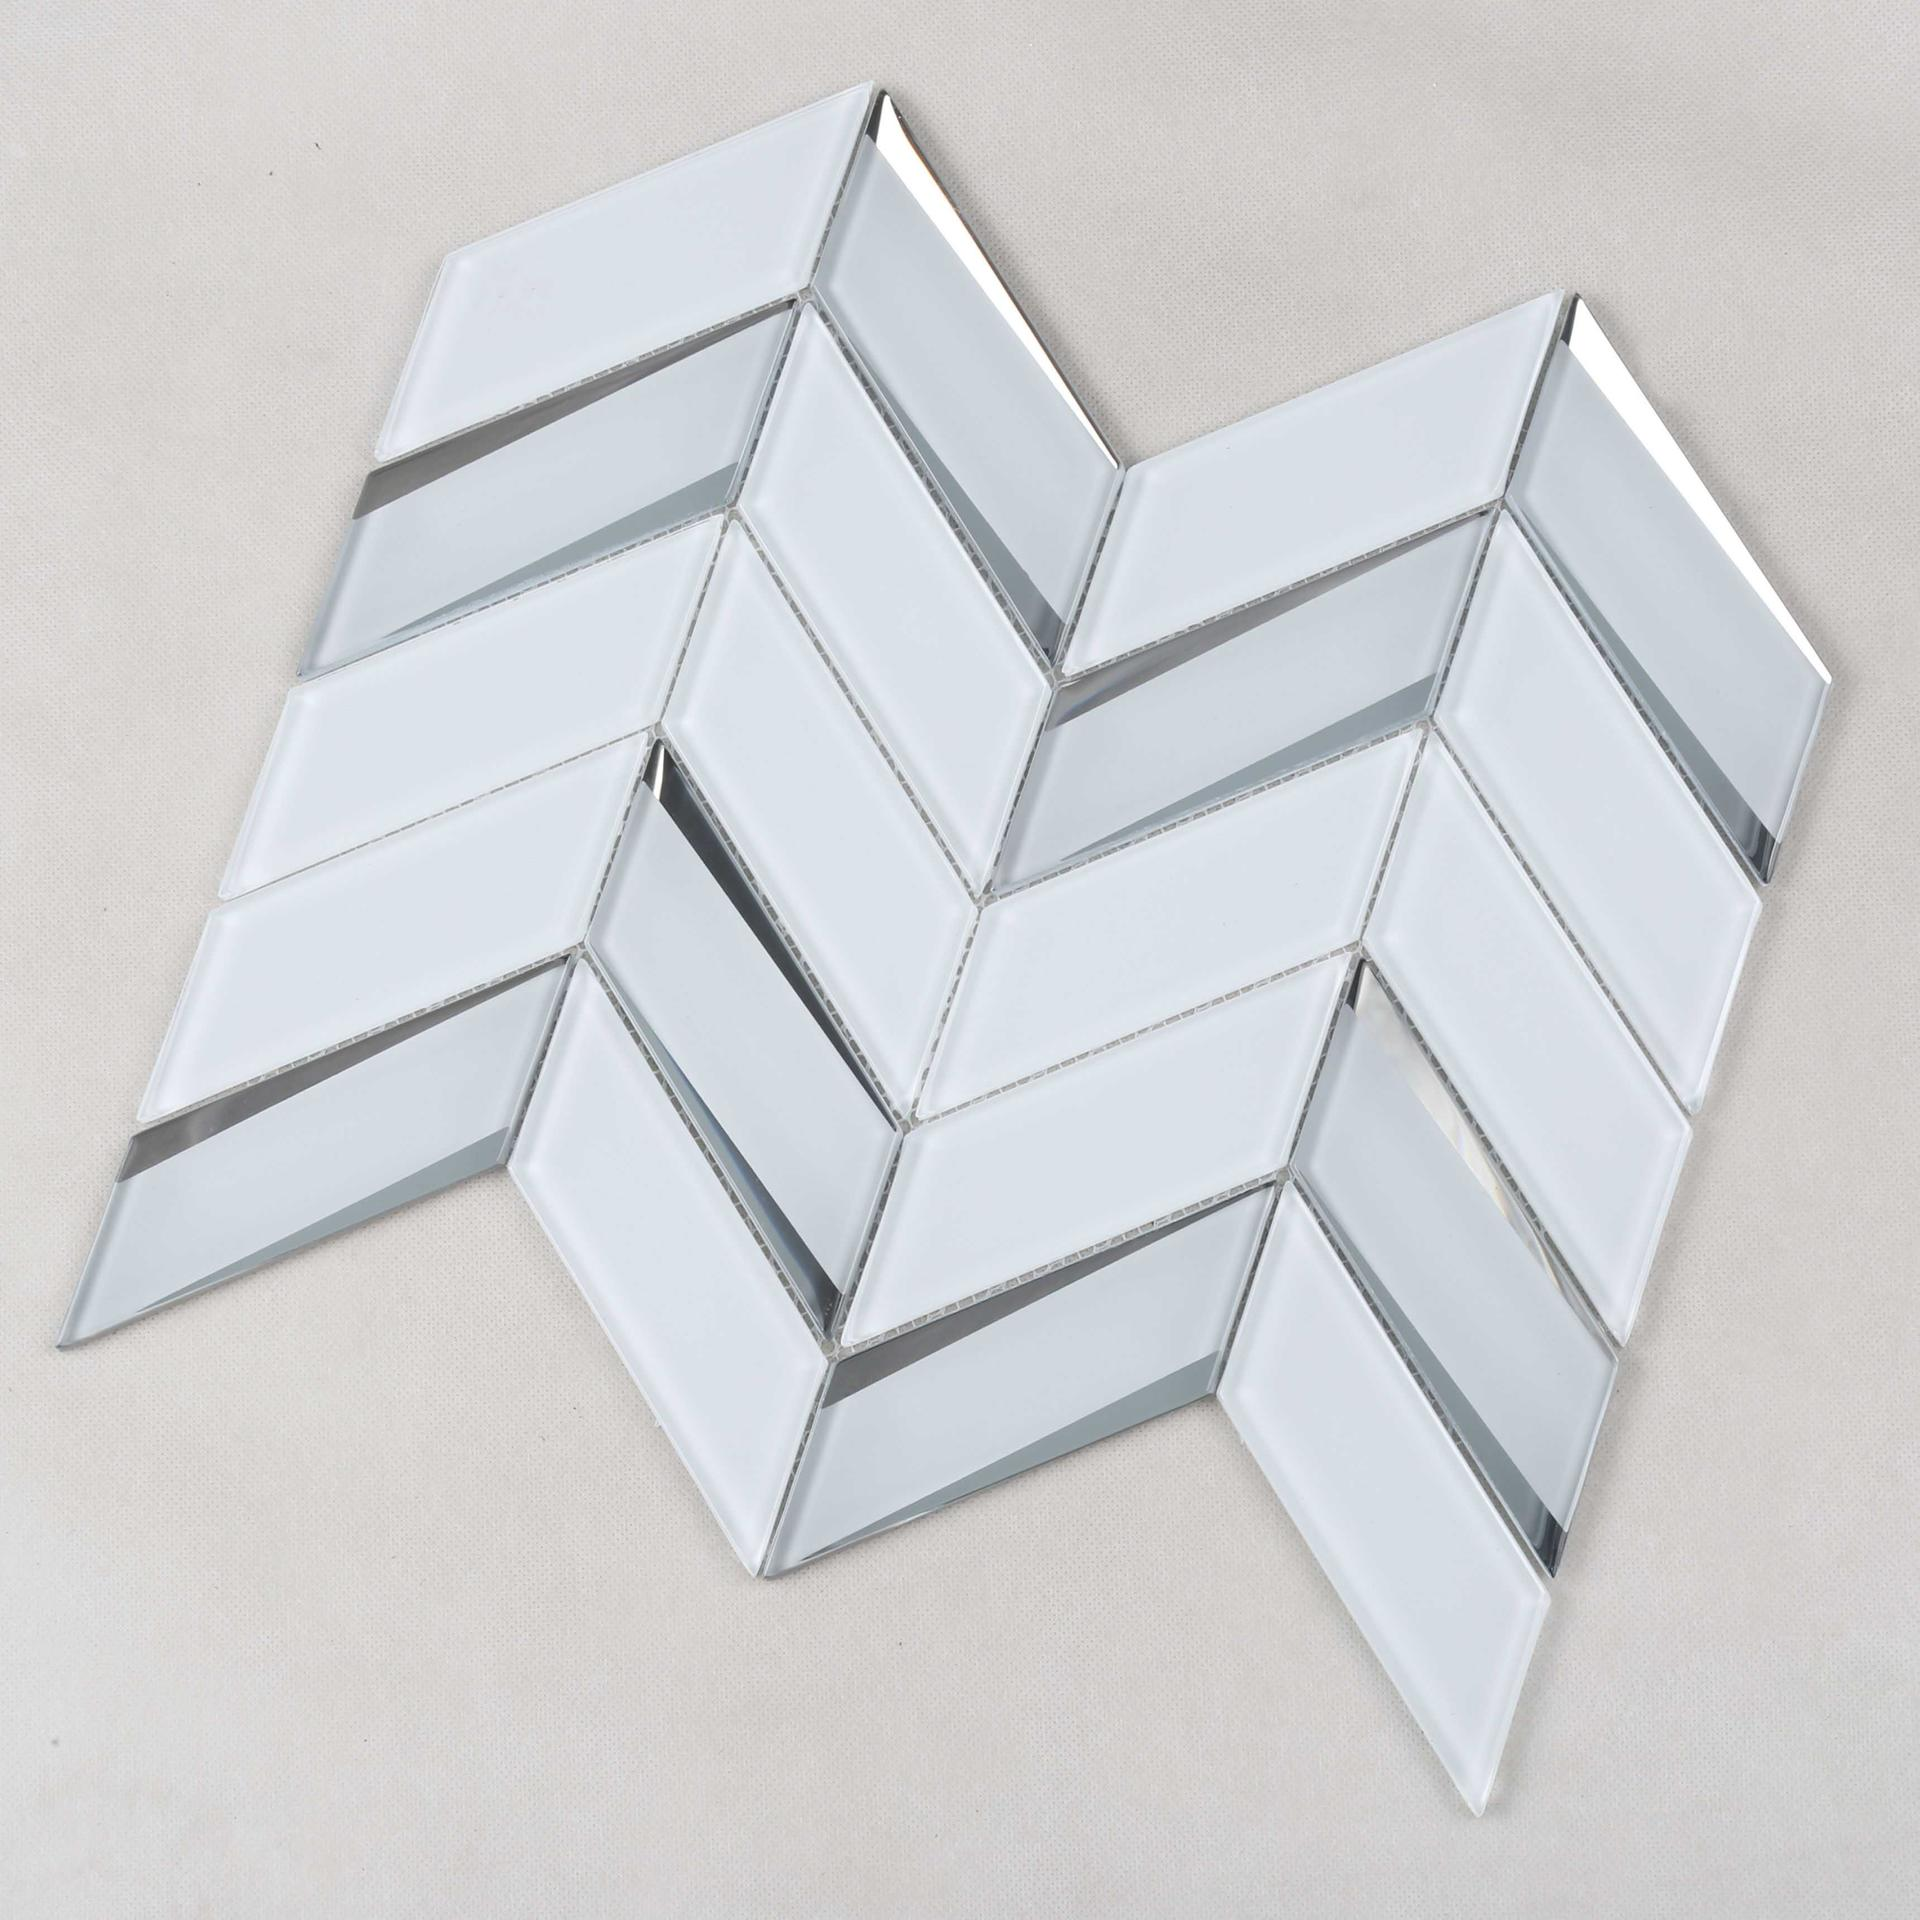 Heng Xing-hexagon tile ,metallic glass mosaic tile | Heng Xing-1